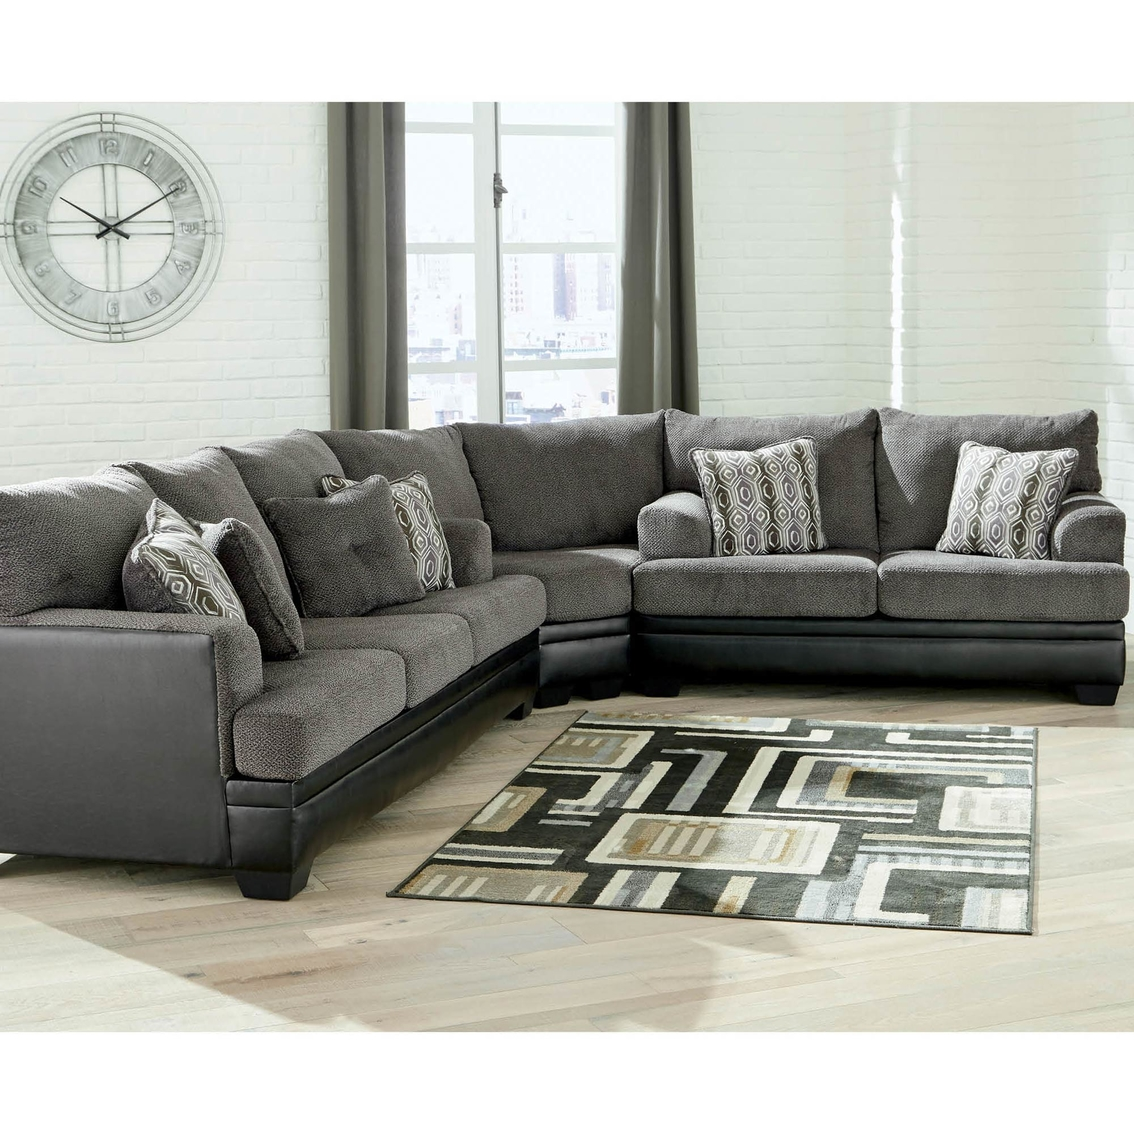 Signature Design By Ashley Millingar 3 Pc Sectional Sofa Loveseat